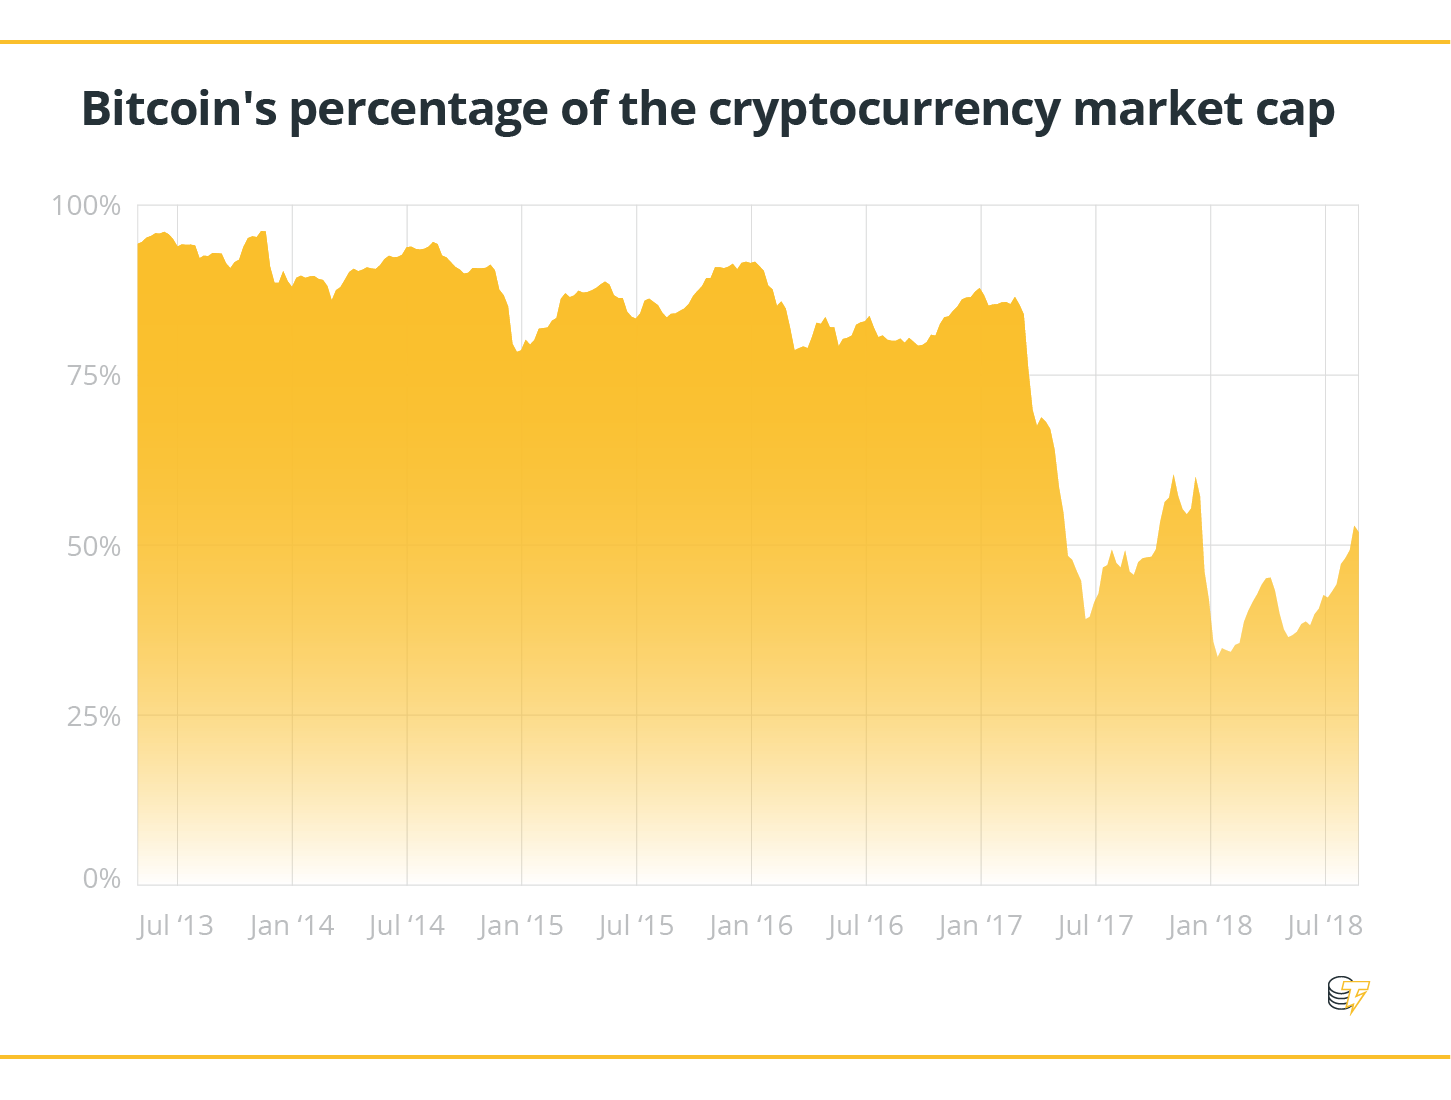 Bitcoin's percentage of the cryptocurrency market cap